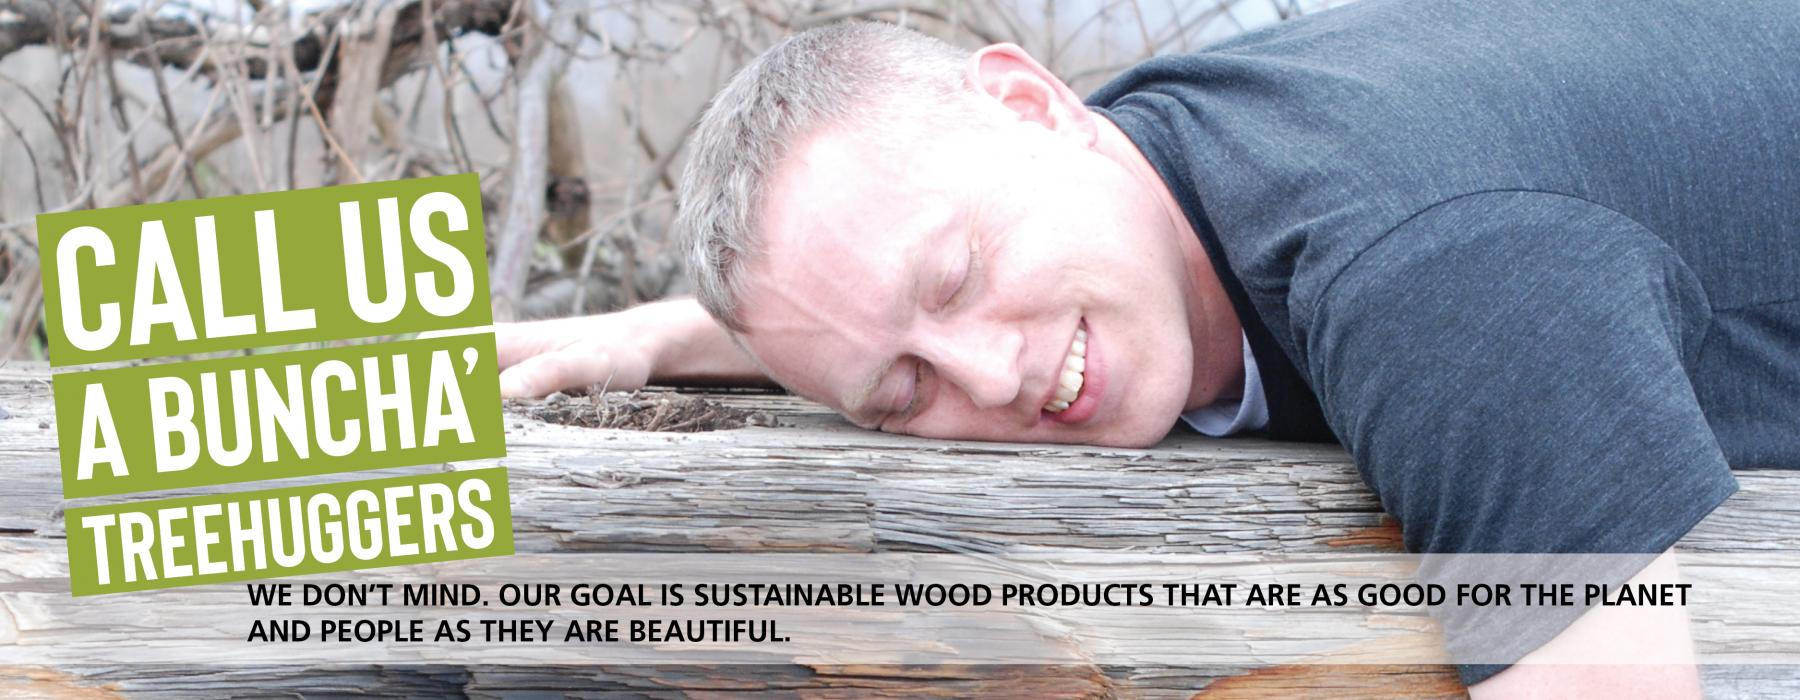 Pioneer Millworks Reclaimed and Sustainable Wood Products Ethically and Sustainably Sourced